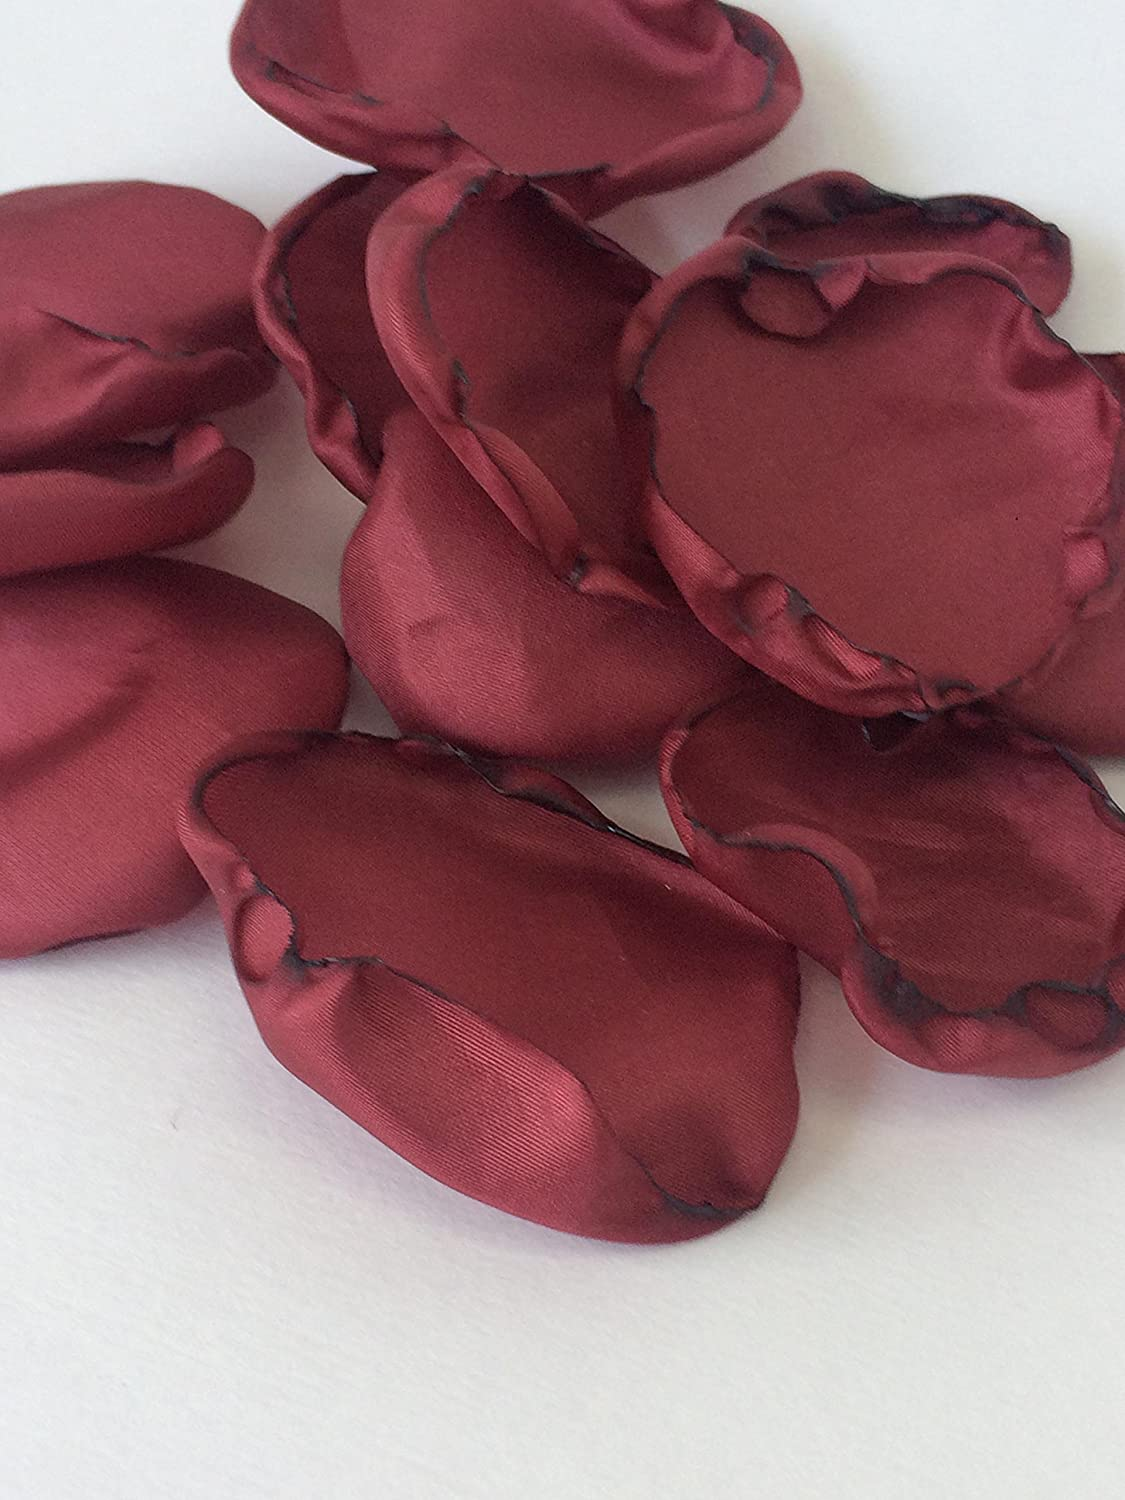 (50) Handmade burgundy/ wine satin fabric flower petals- wedding toss, flower girl, aisle decor, satin petals, bendy blossoms bendyblossoms 91JLaGqDDnL